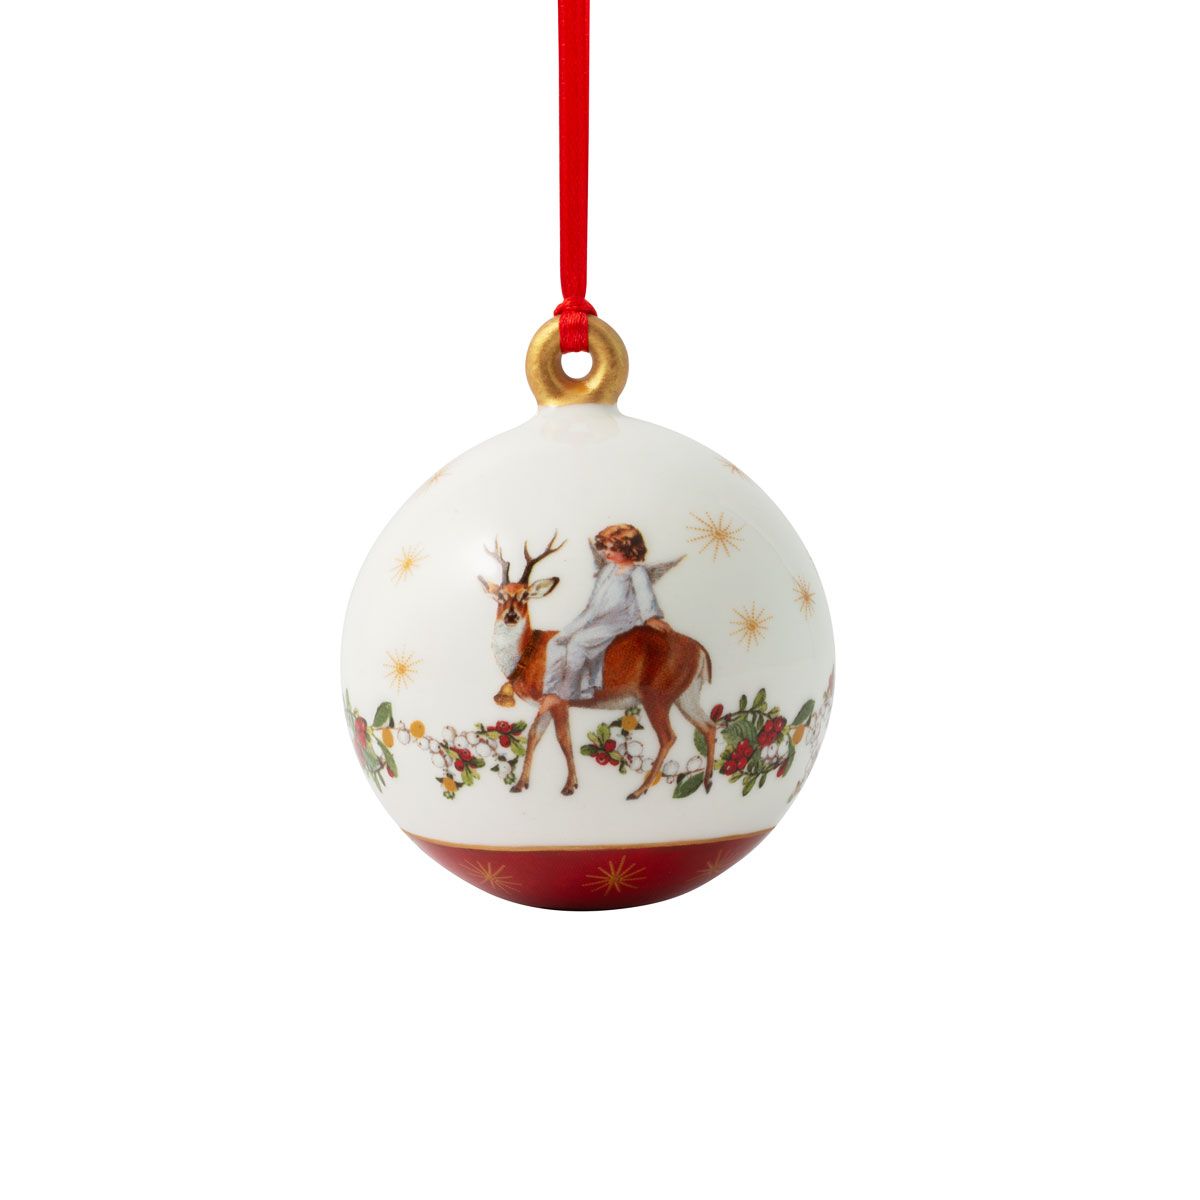 Villeroy and Boch 2020 Annual Christmas Edition Ball Ornament